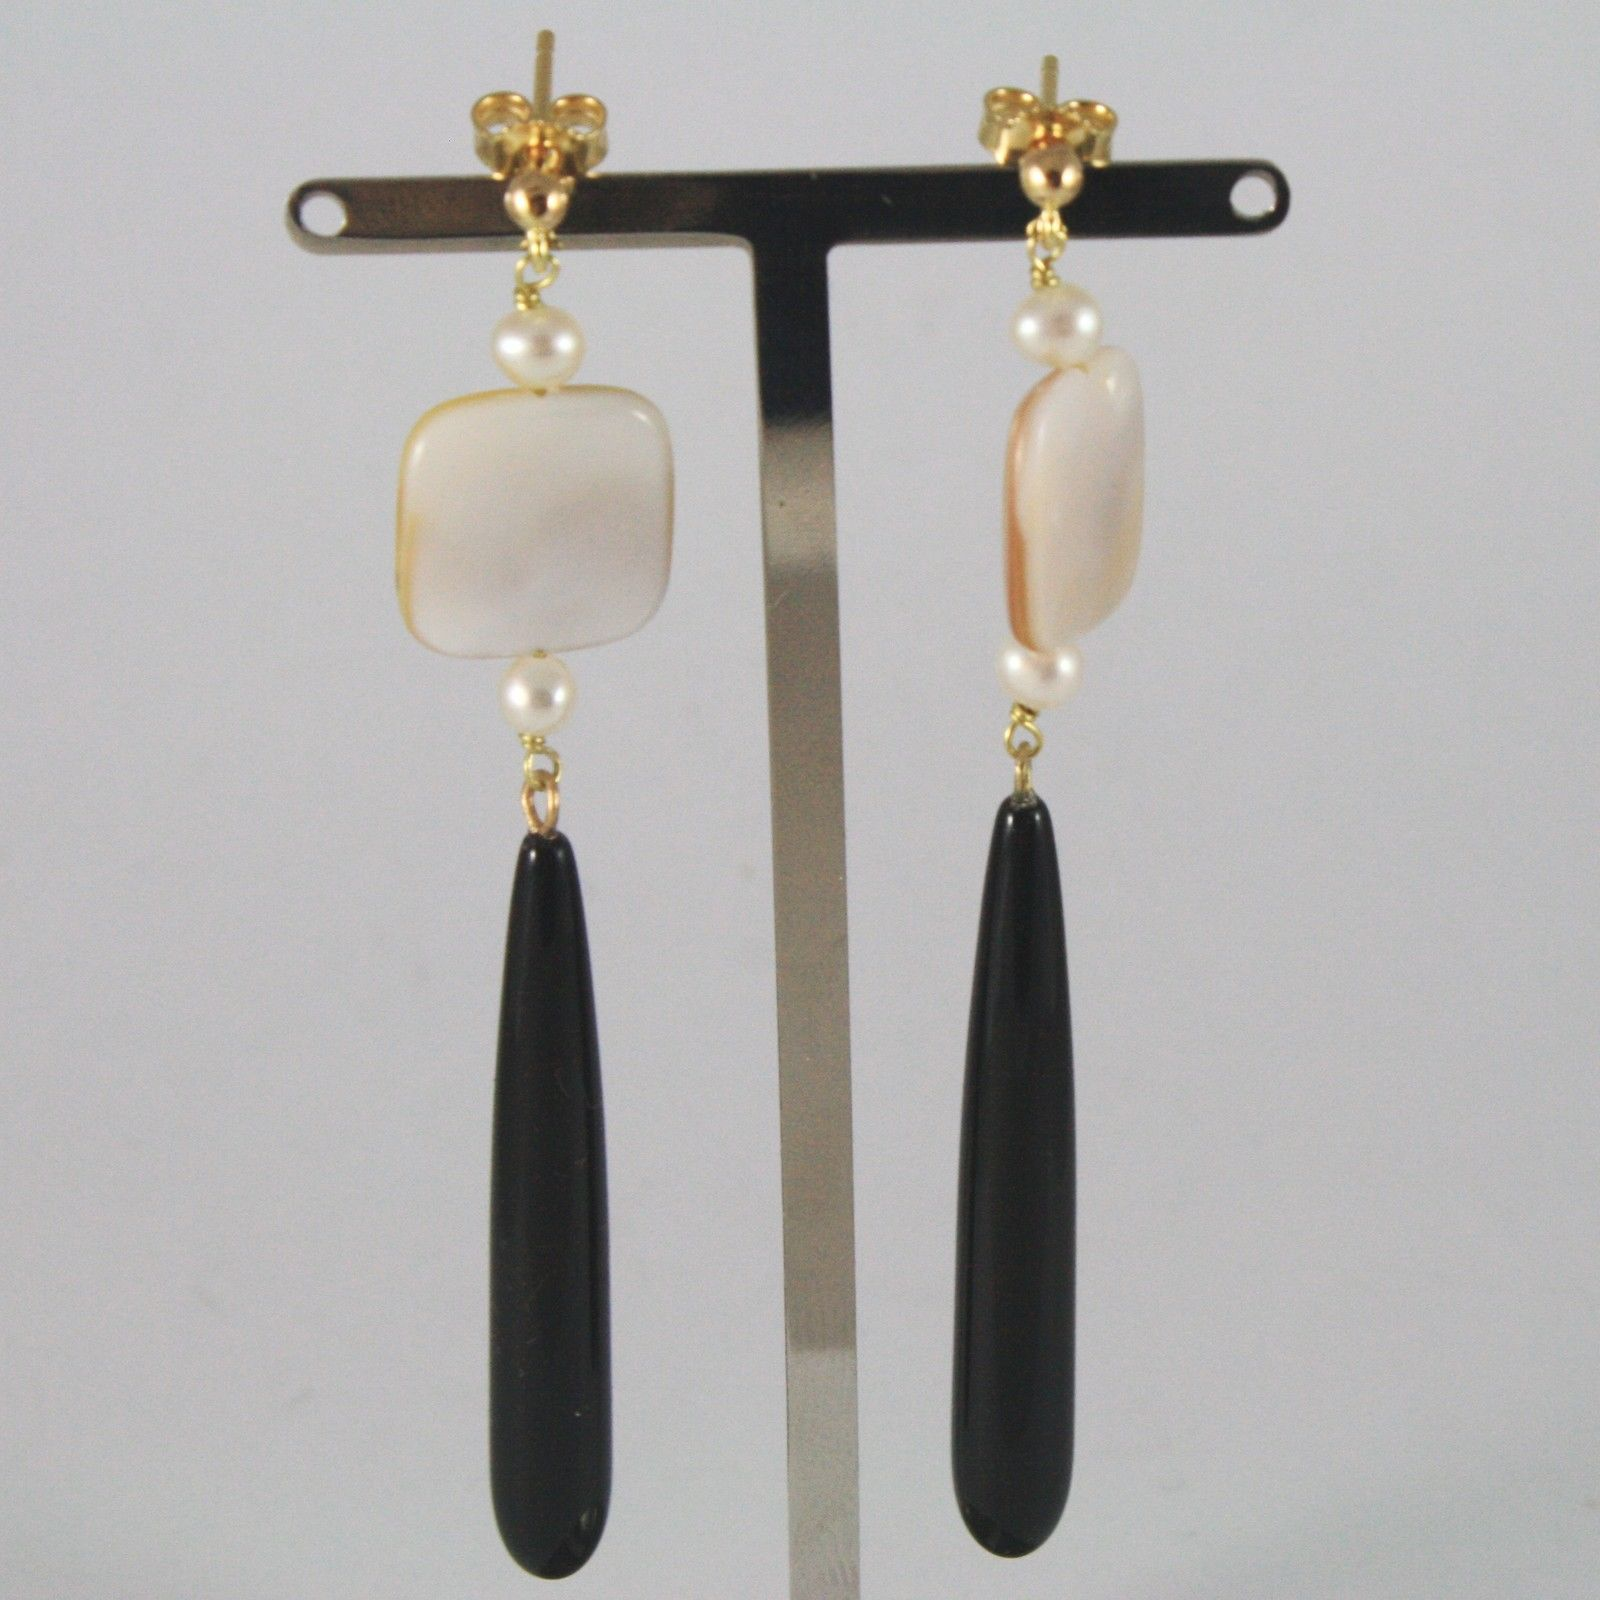 18K SOLID YELLOW GOLD EARRINGS WITH PEARLS MOTHER OF PEARL AND BLACK ONYX